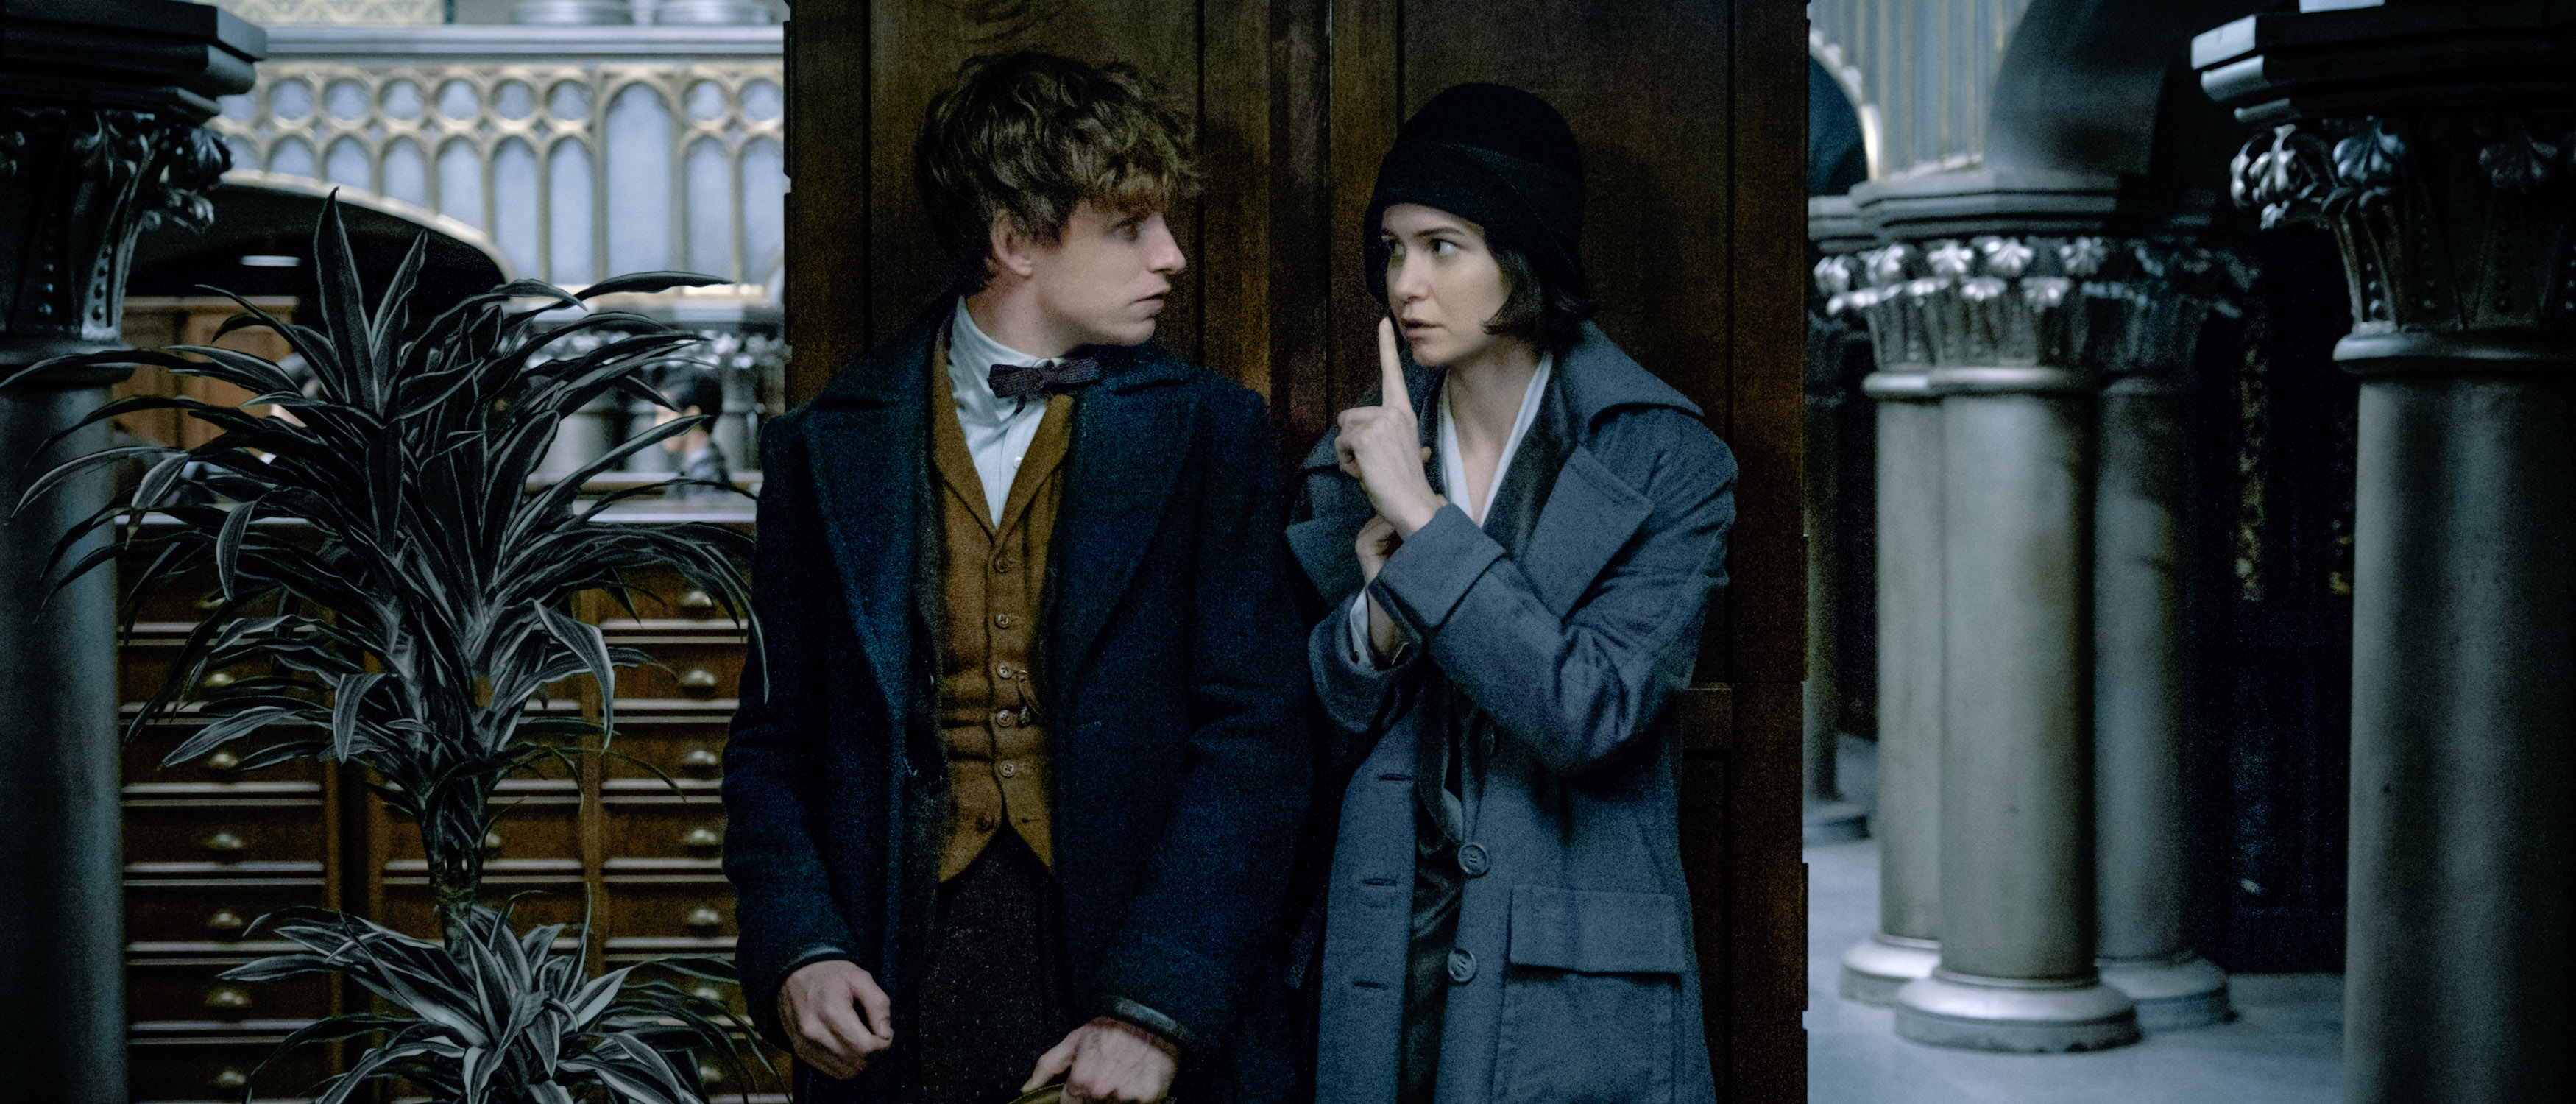 The action of the sequel Fantastic beasts will take place in Paris 11/23/2017 79